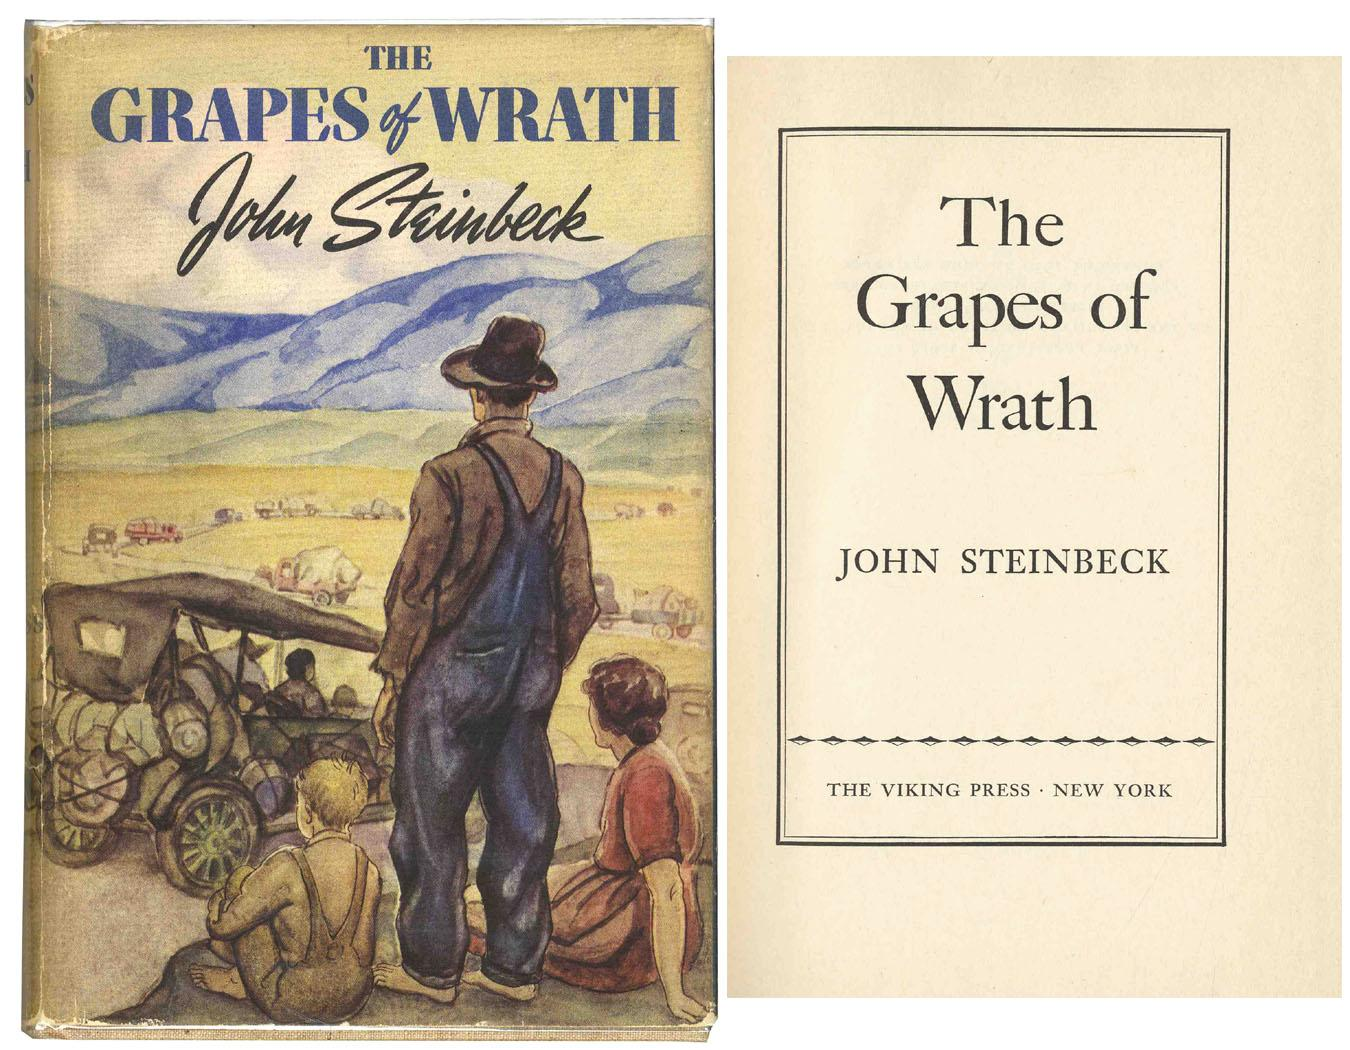 rhetorical analysis the grapes of wrath So, in the beginning of the grapes of wrath and the pearl, steinbeck employs an informative language that predicts the misfortune that an extreme materialistic behavior is going to cause for the joads in the grapes of wrath as well as for kino's family in the pearl.